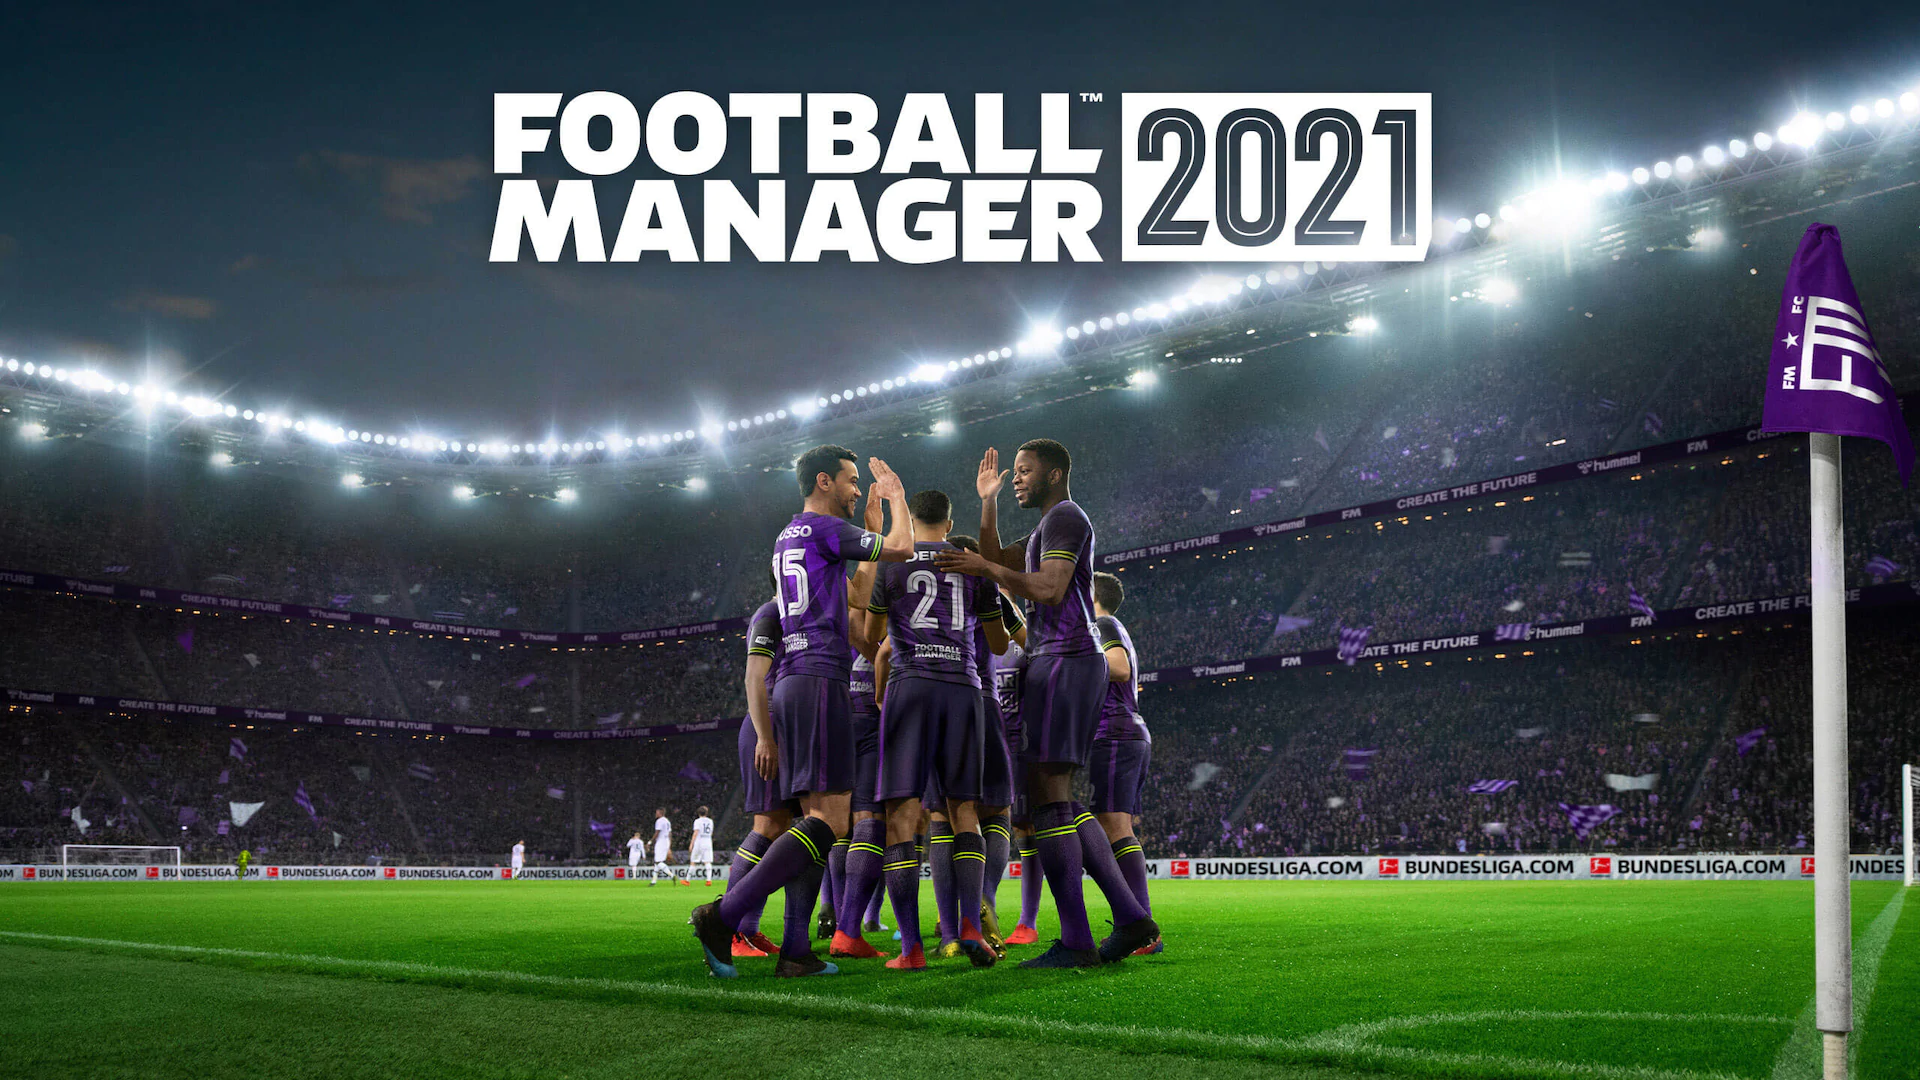 Football Manager 2021 crash at launch